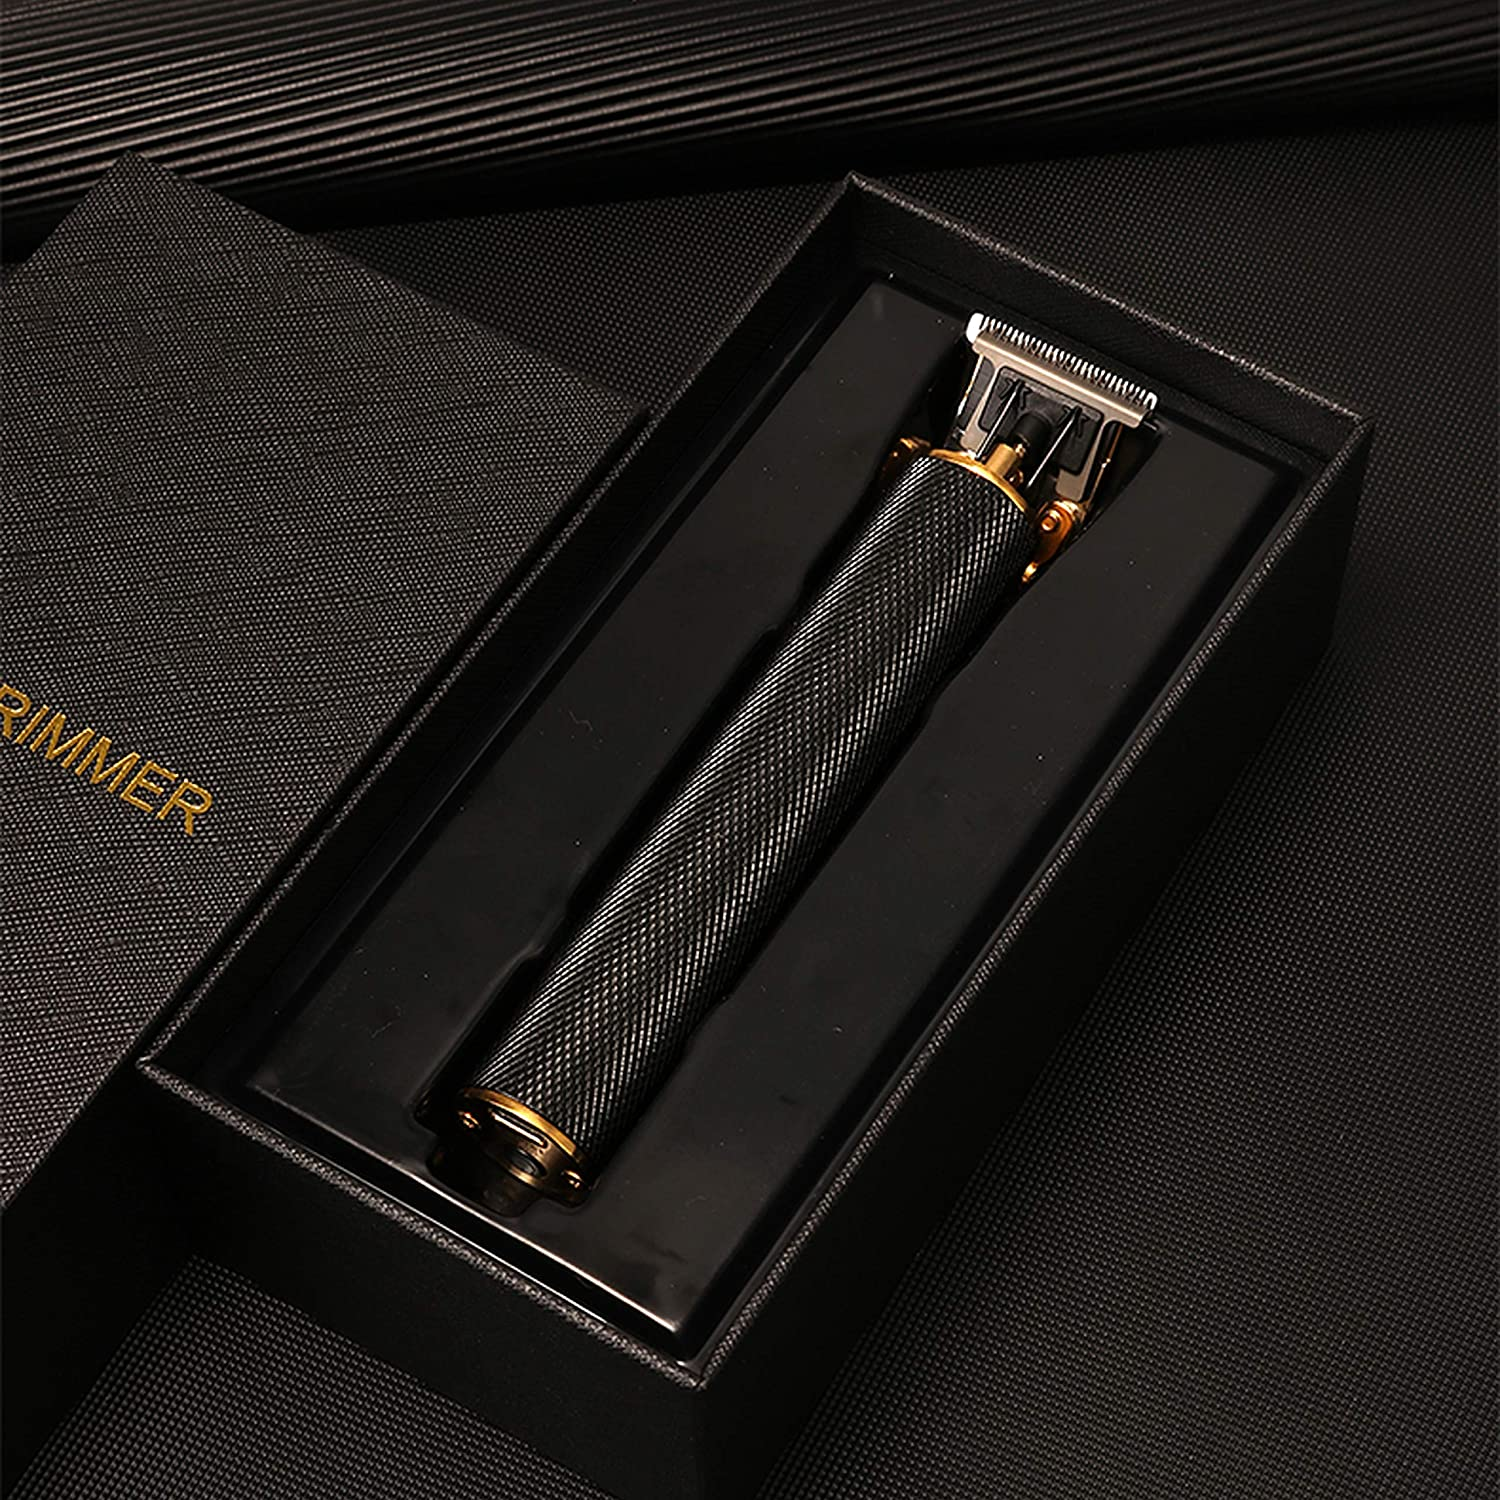 【Buy 1 Get 1 Free】 2021 New Rechargeable T-blade Men's Hair Clipper